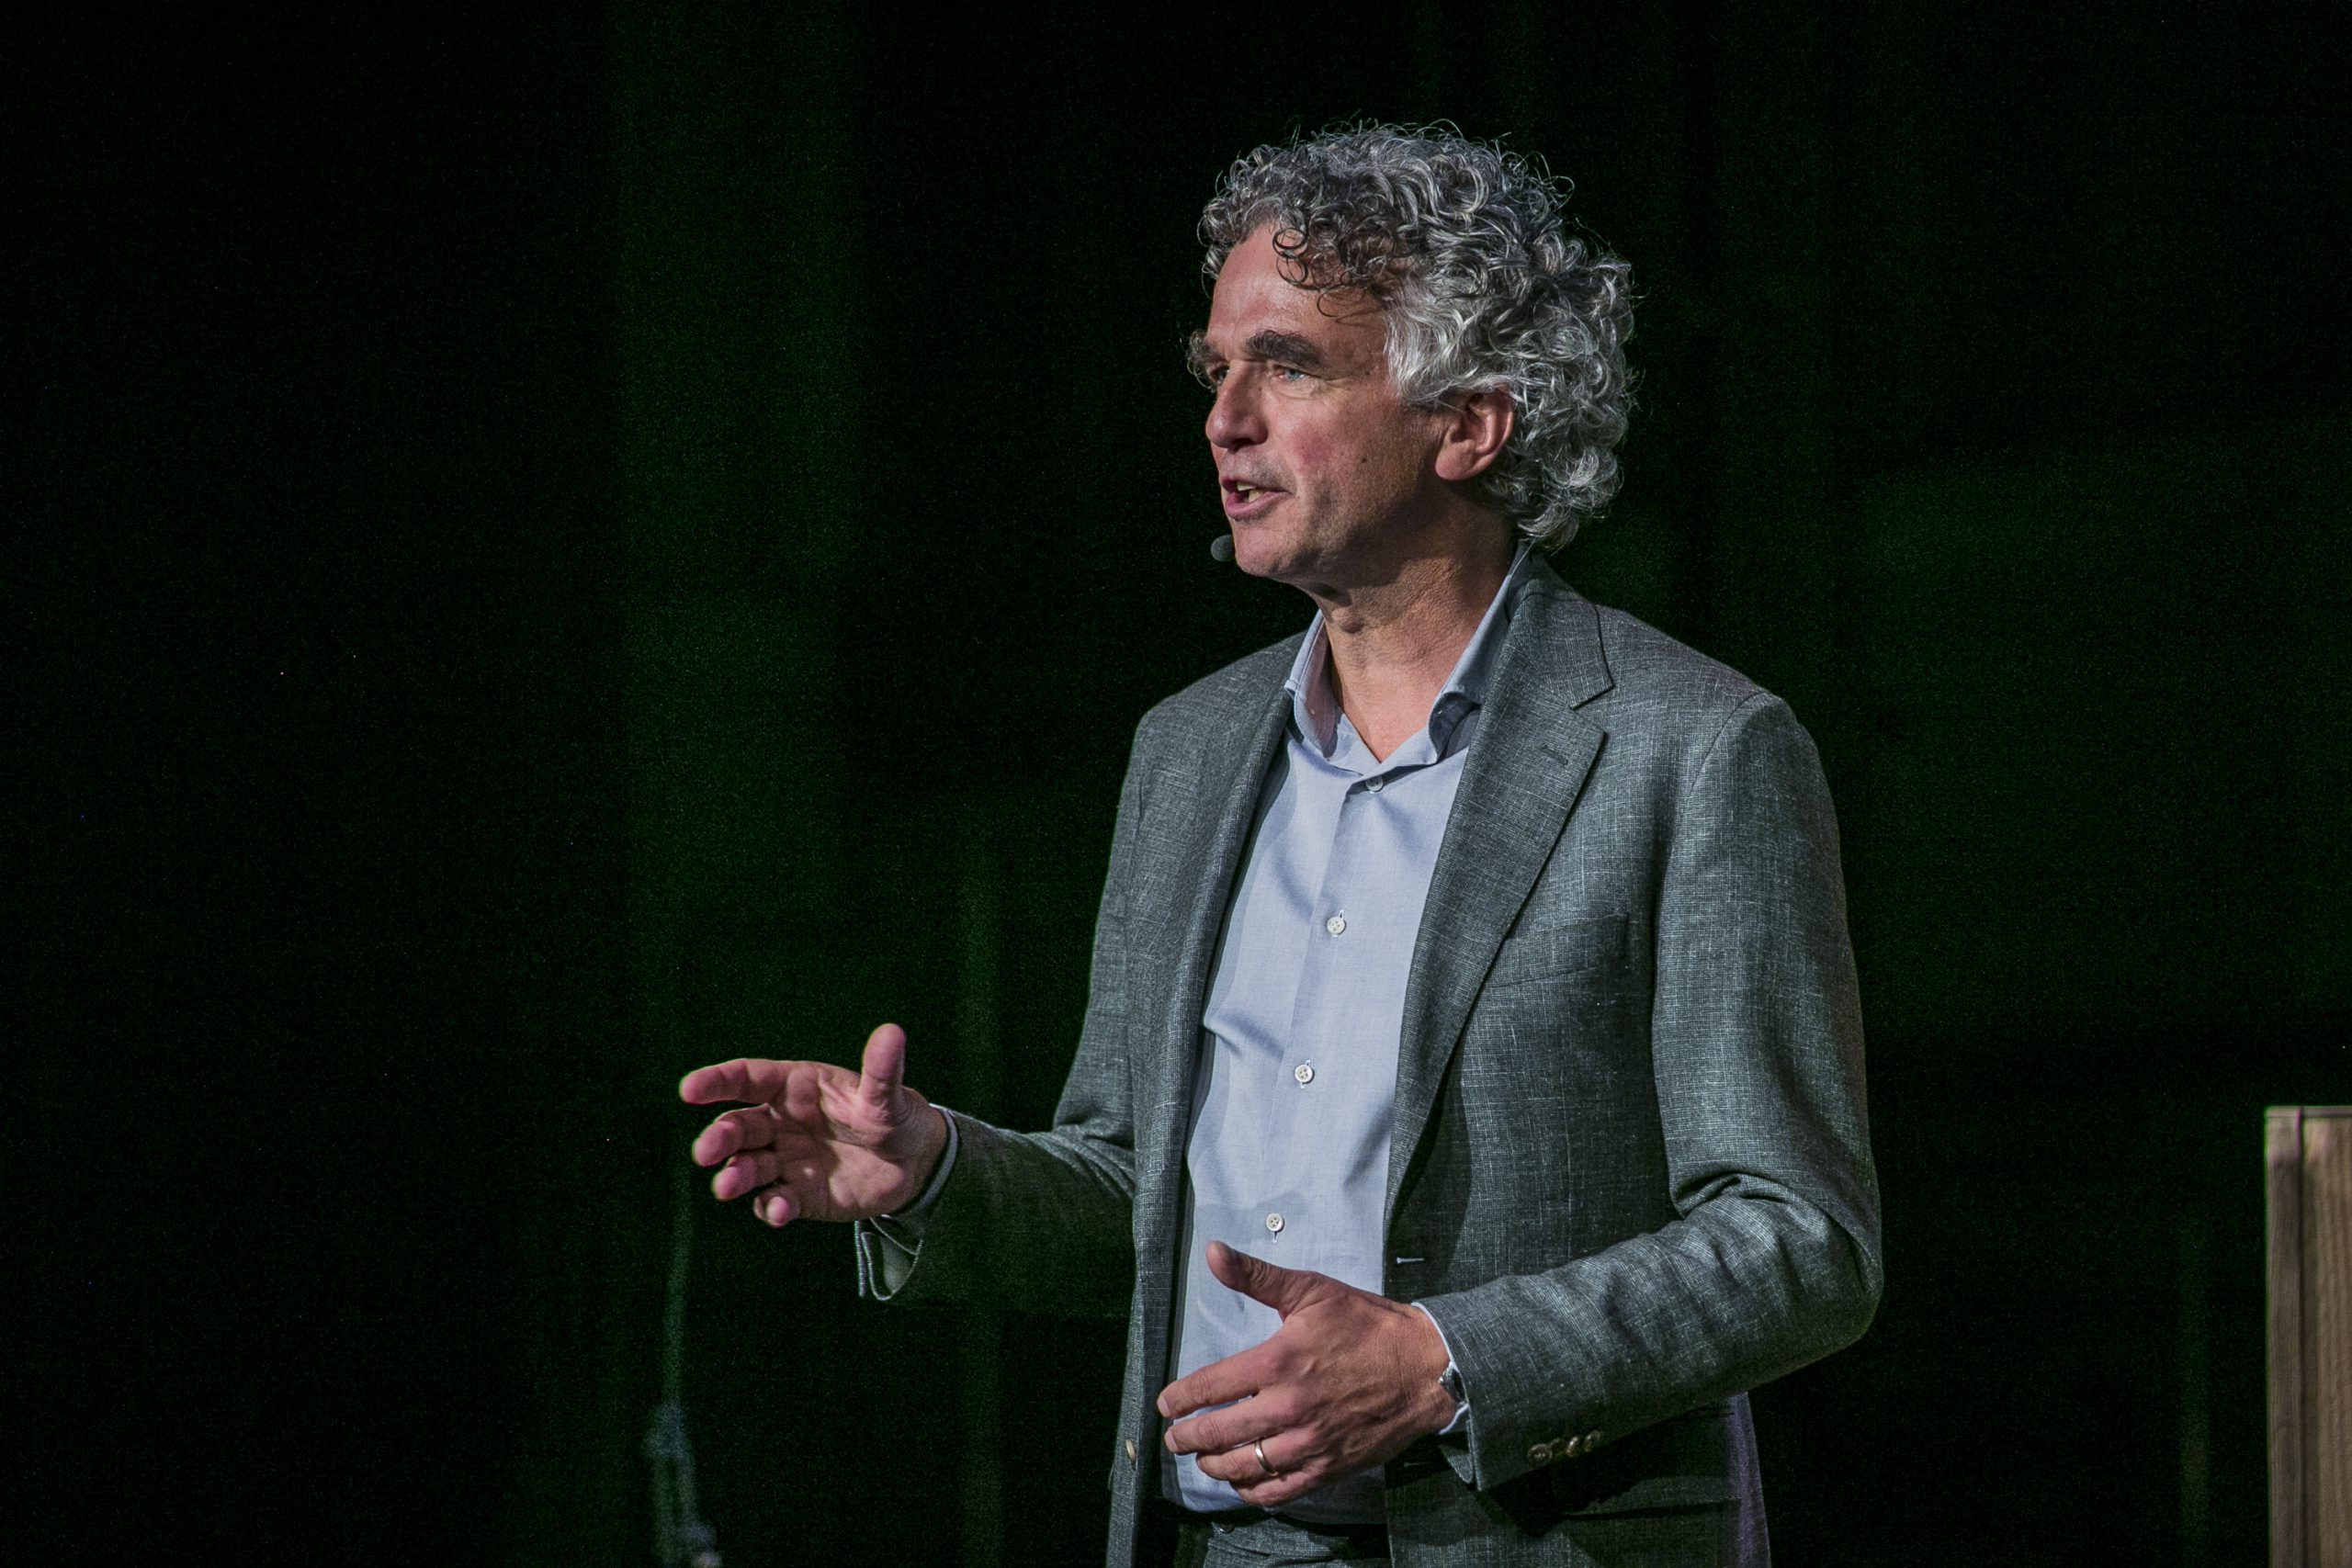 Meet the Dutchman twisting the arm of the world's most powerful polluters - DutchNews.nl